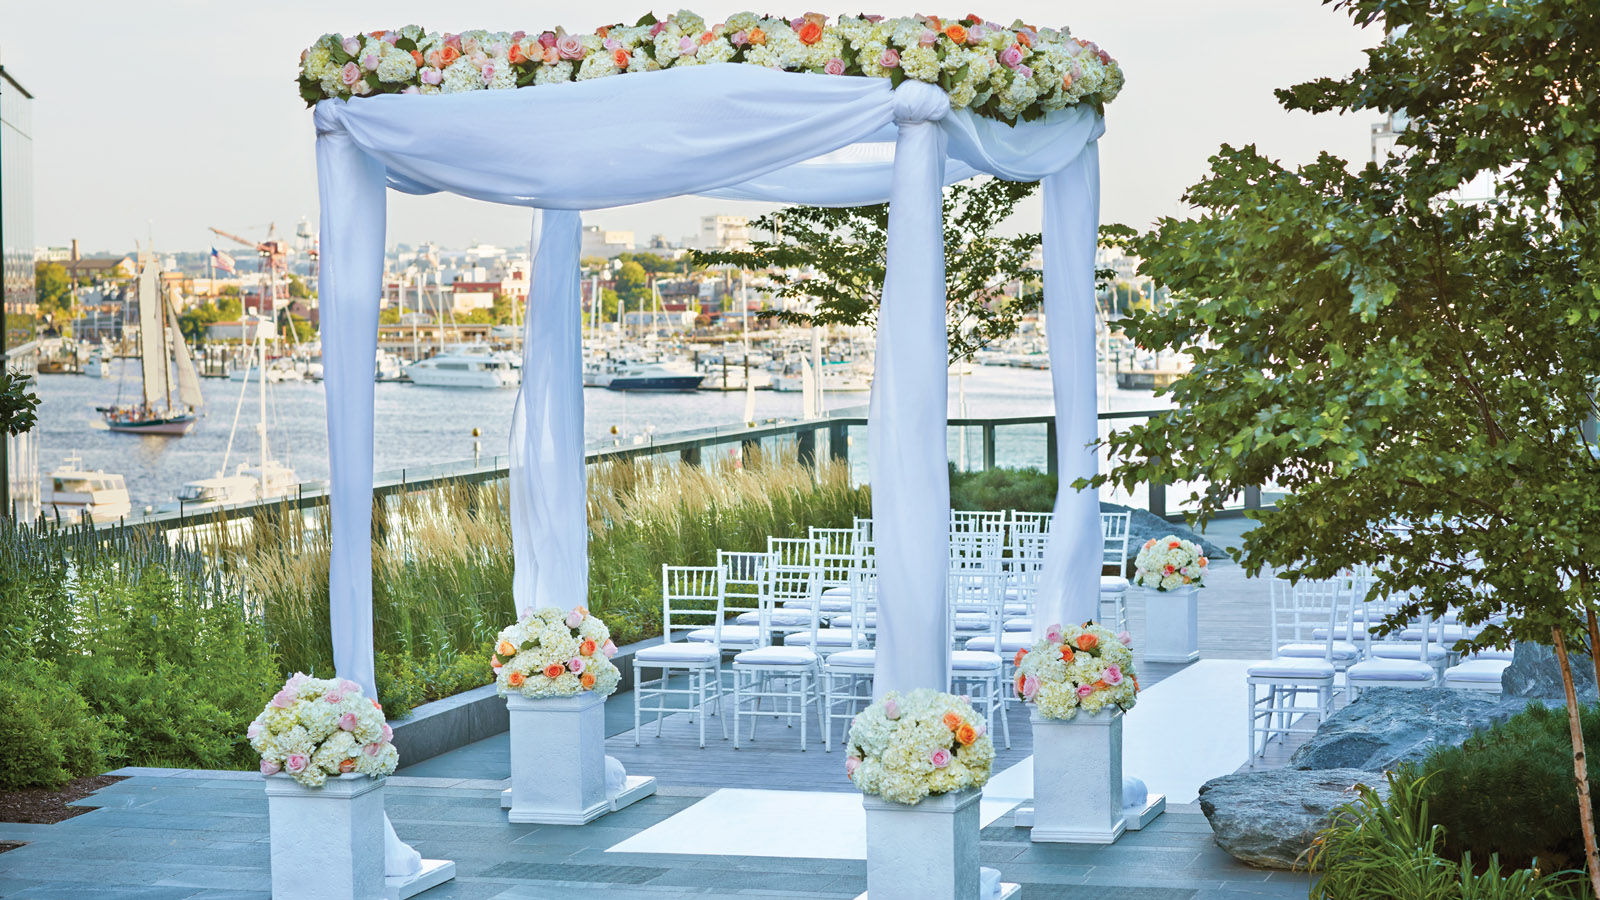 I Had My Wedding At The Four Seasons In Baltimore Cobalt Room July And It Was Magical